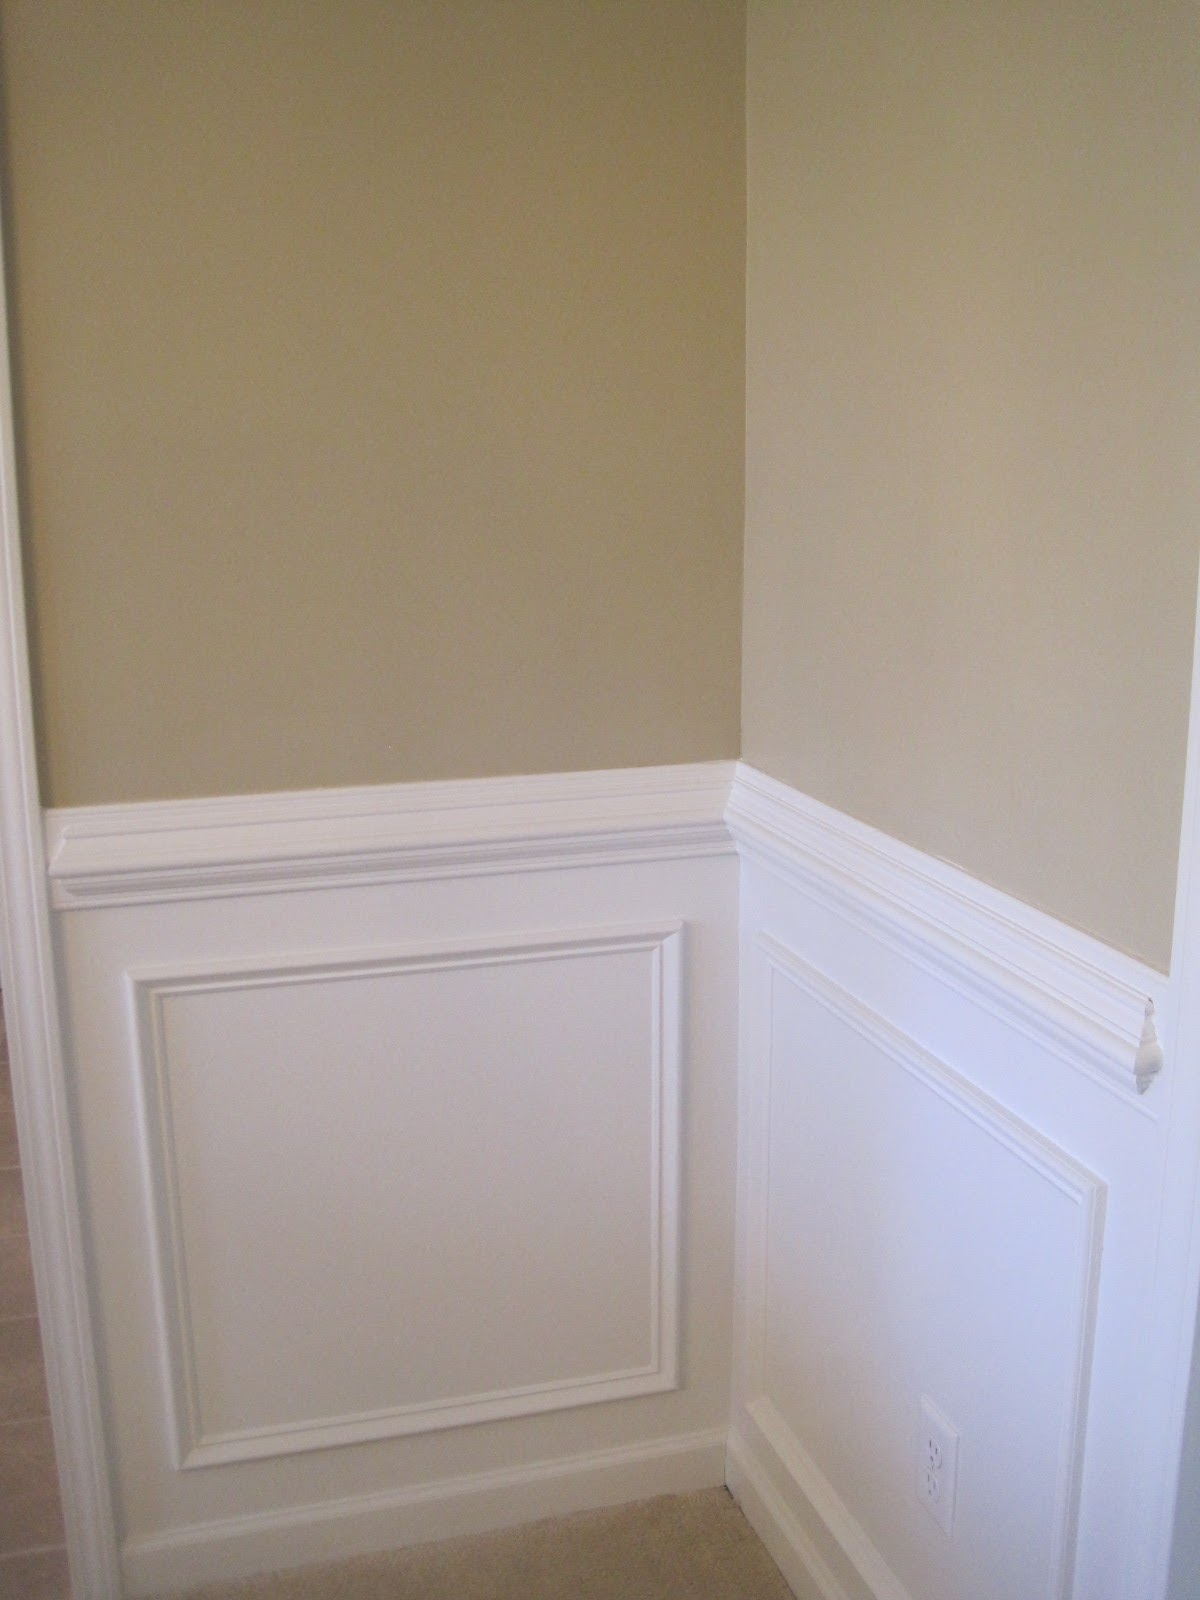 Chair Rail Designed To Dwell More Molding